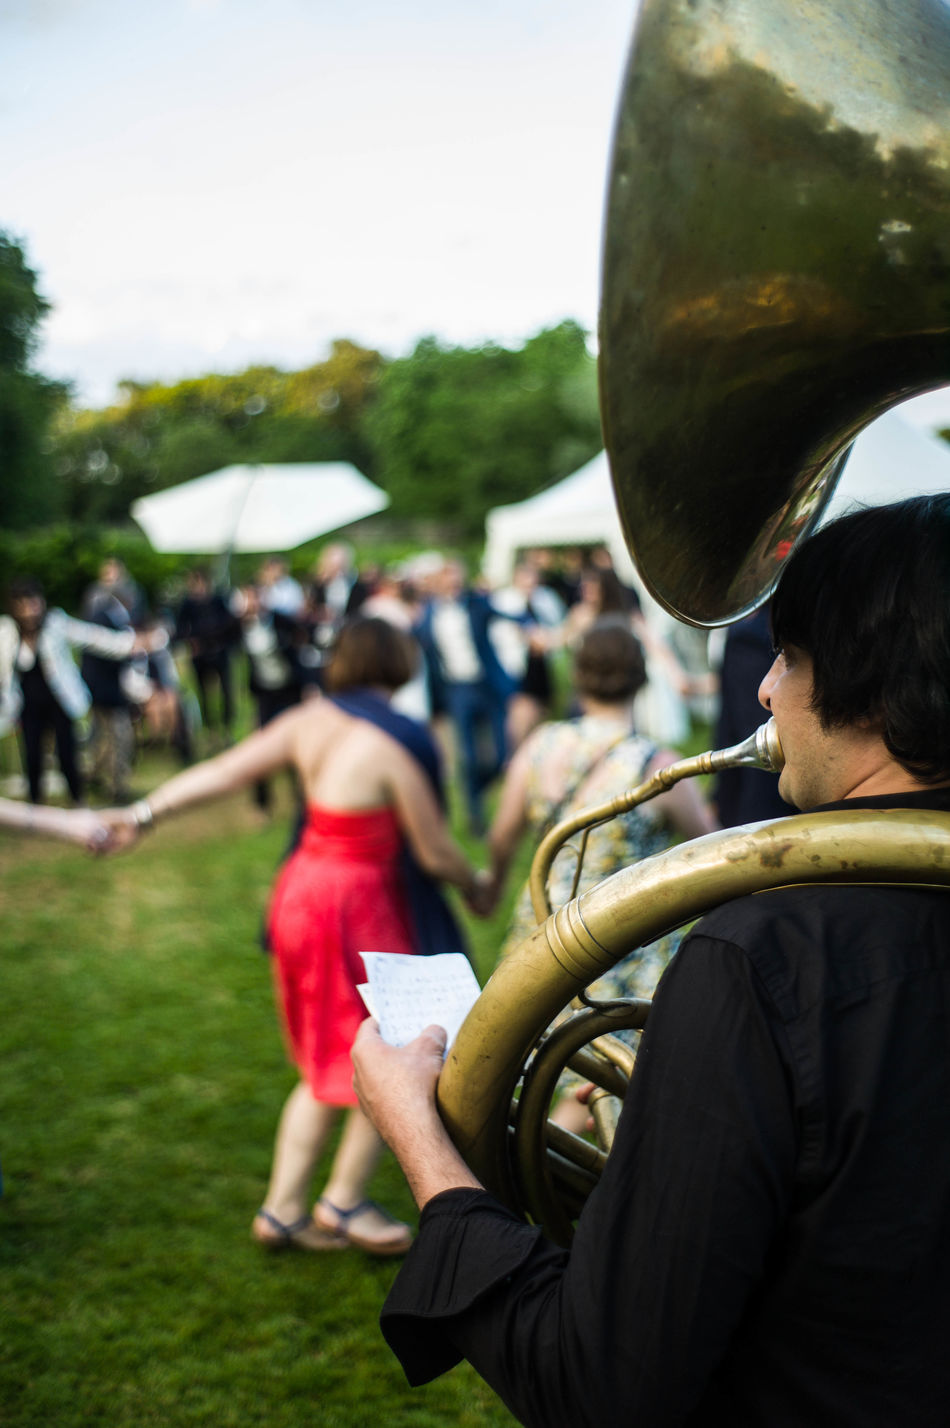 Buxy Day Evening Focus On Foreground Freshness Friendship Fé Music Music Festival Musical Instrument Outdoors Park People People Dancing Soirée Tuba Tzigane We